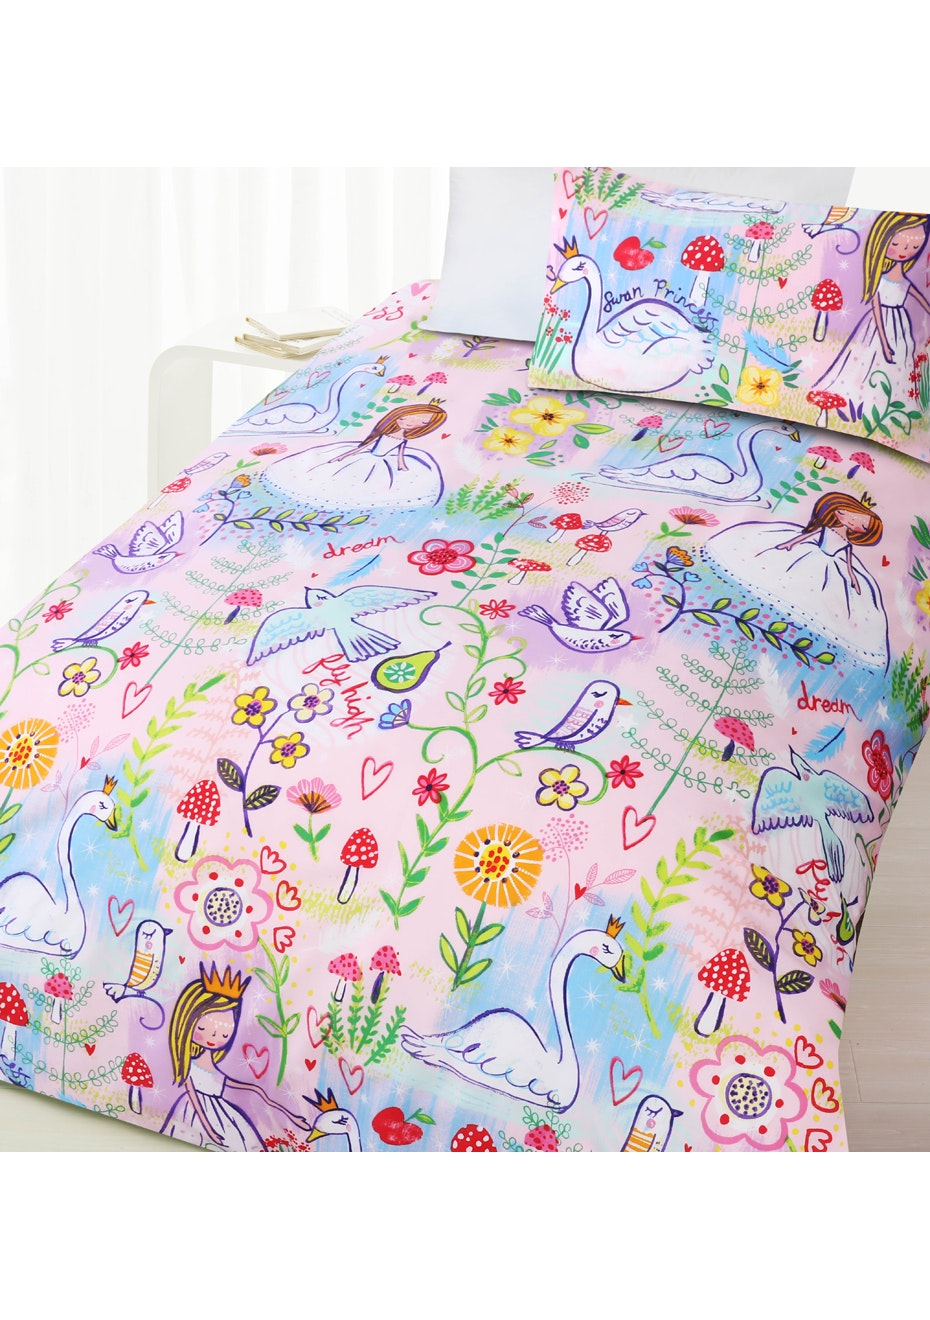 Swan Glow in the Dark Quilt Cover Set - Double Bed